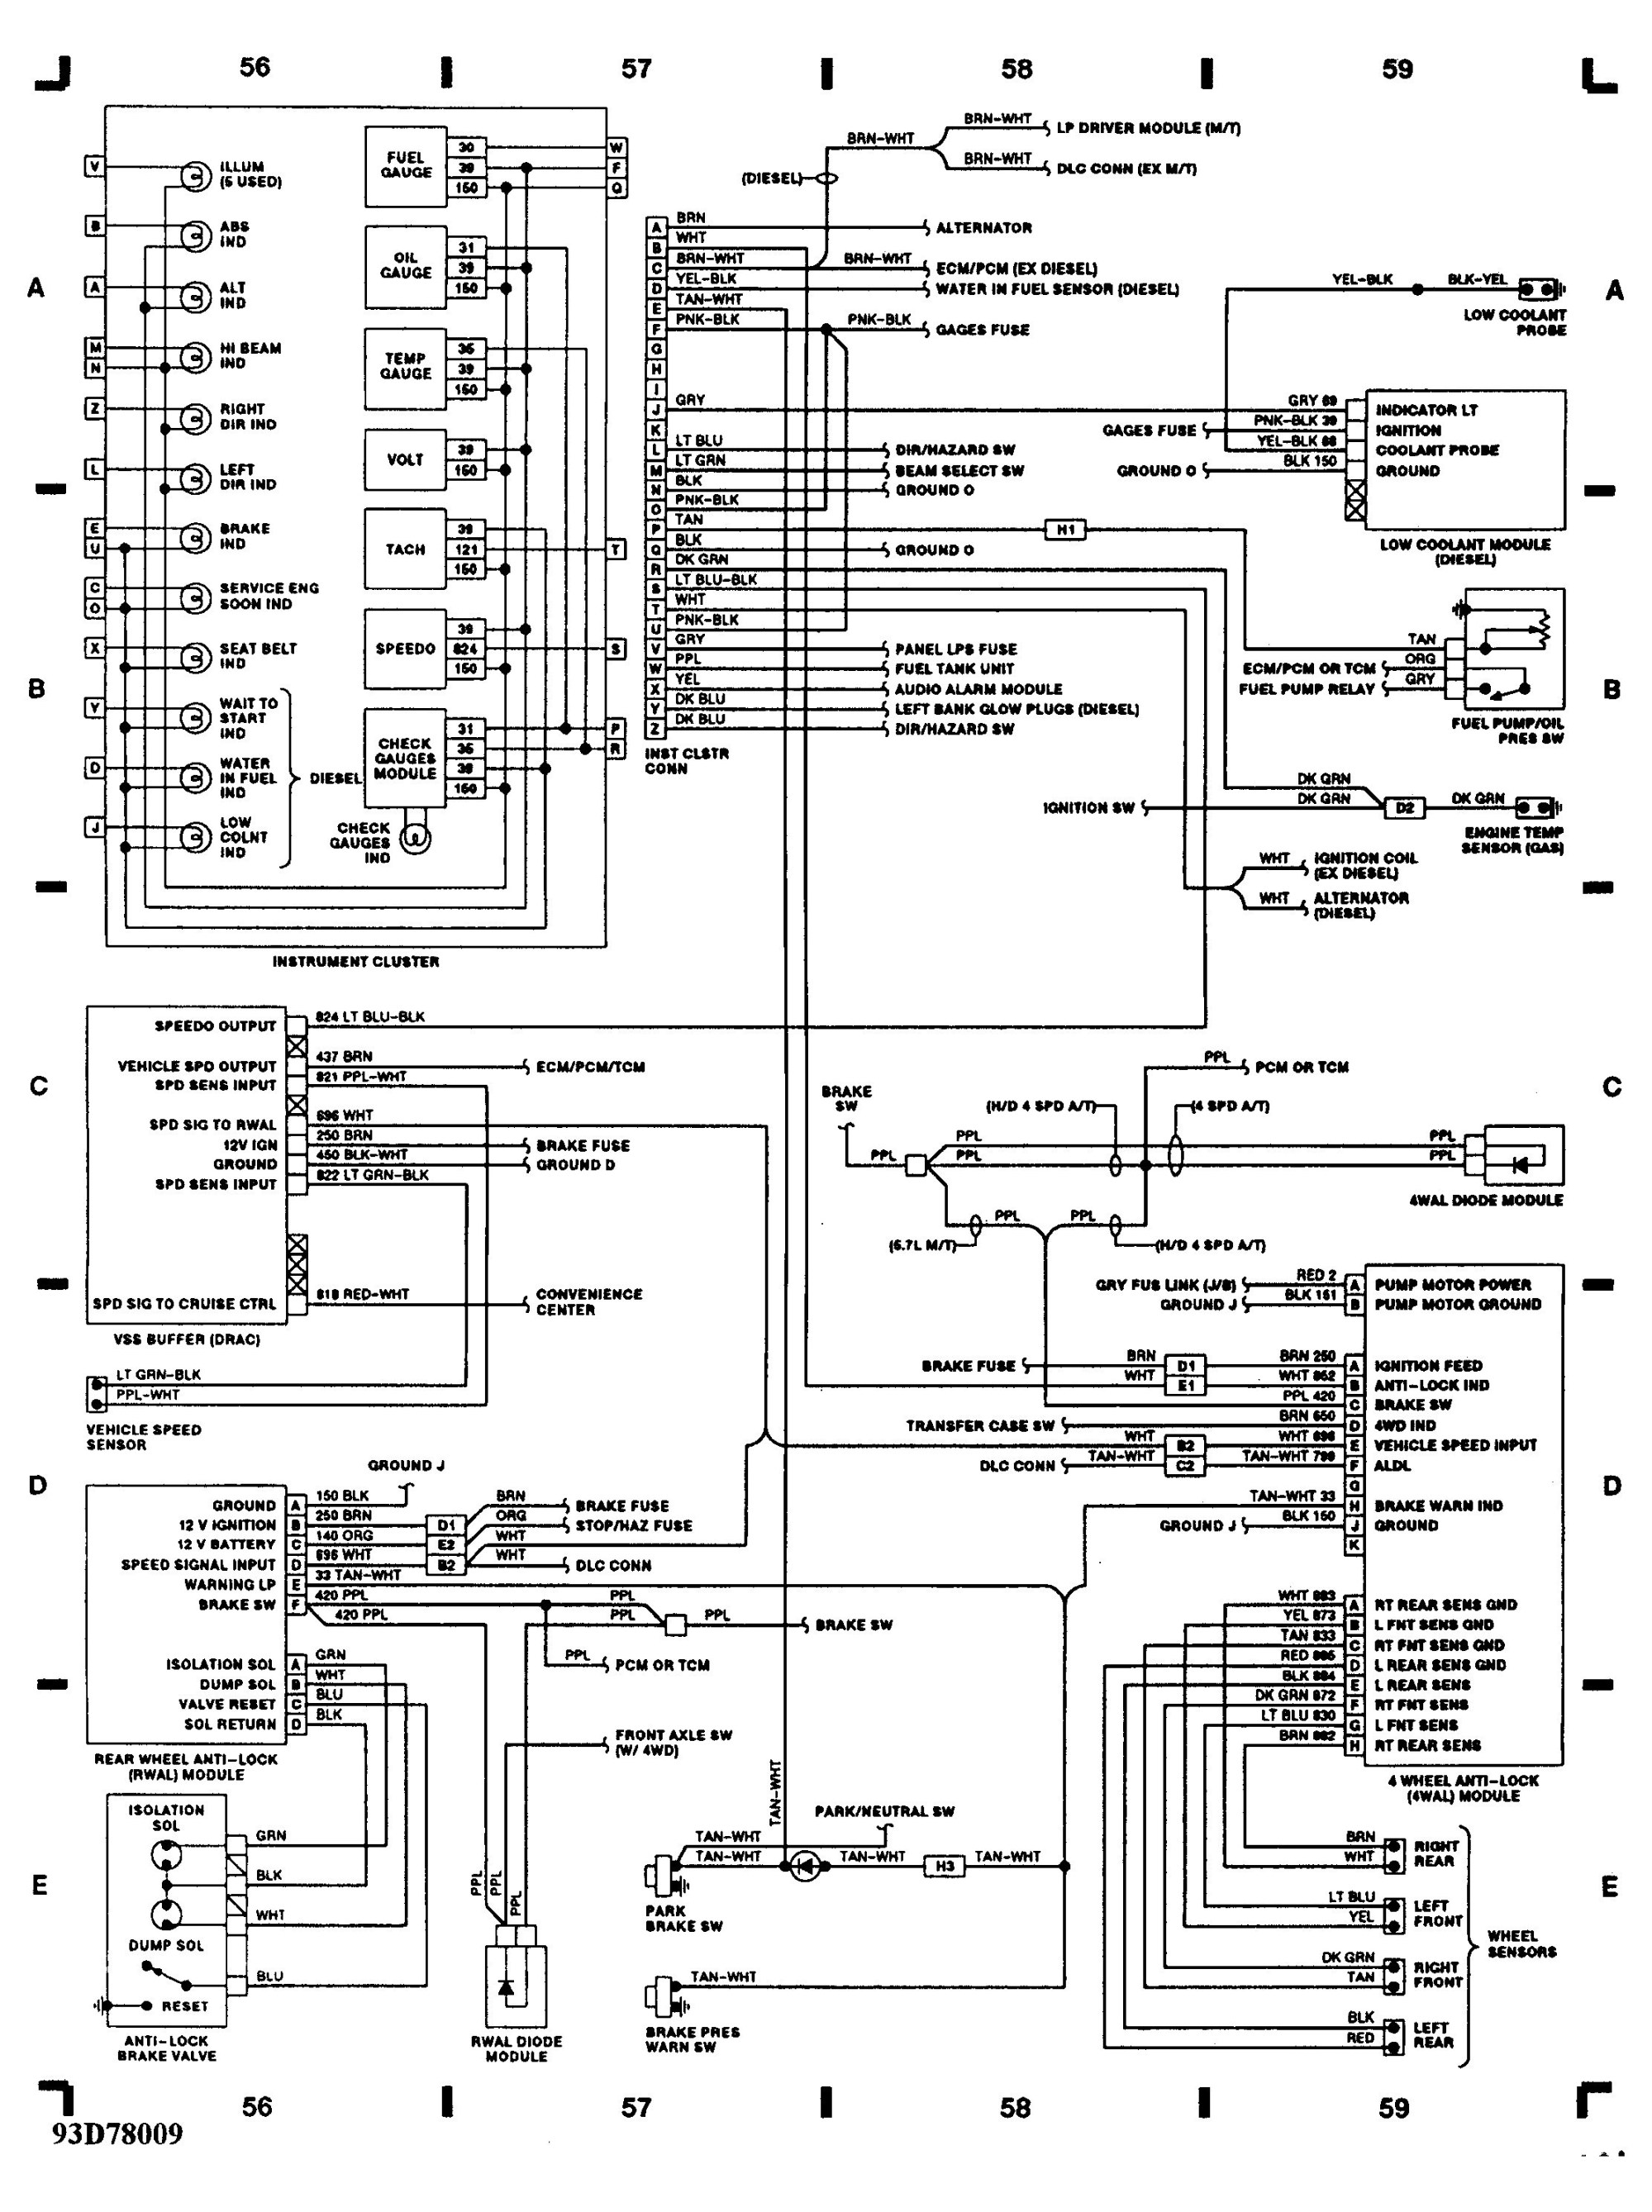 hight resolution of 426 hemi distributor wiring diagram blog wiring diagram 426 hemi engine wiring harness also mopar electronic ignition wiring